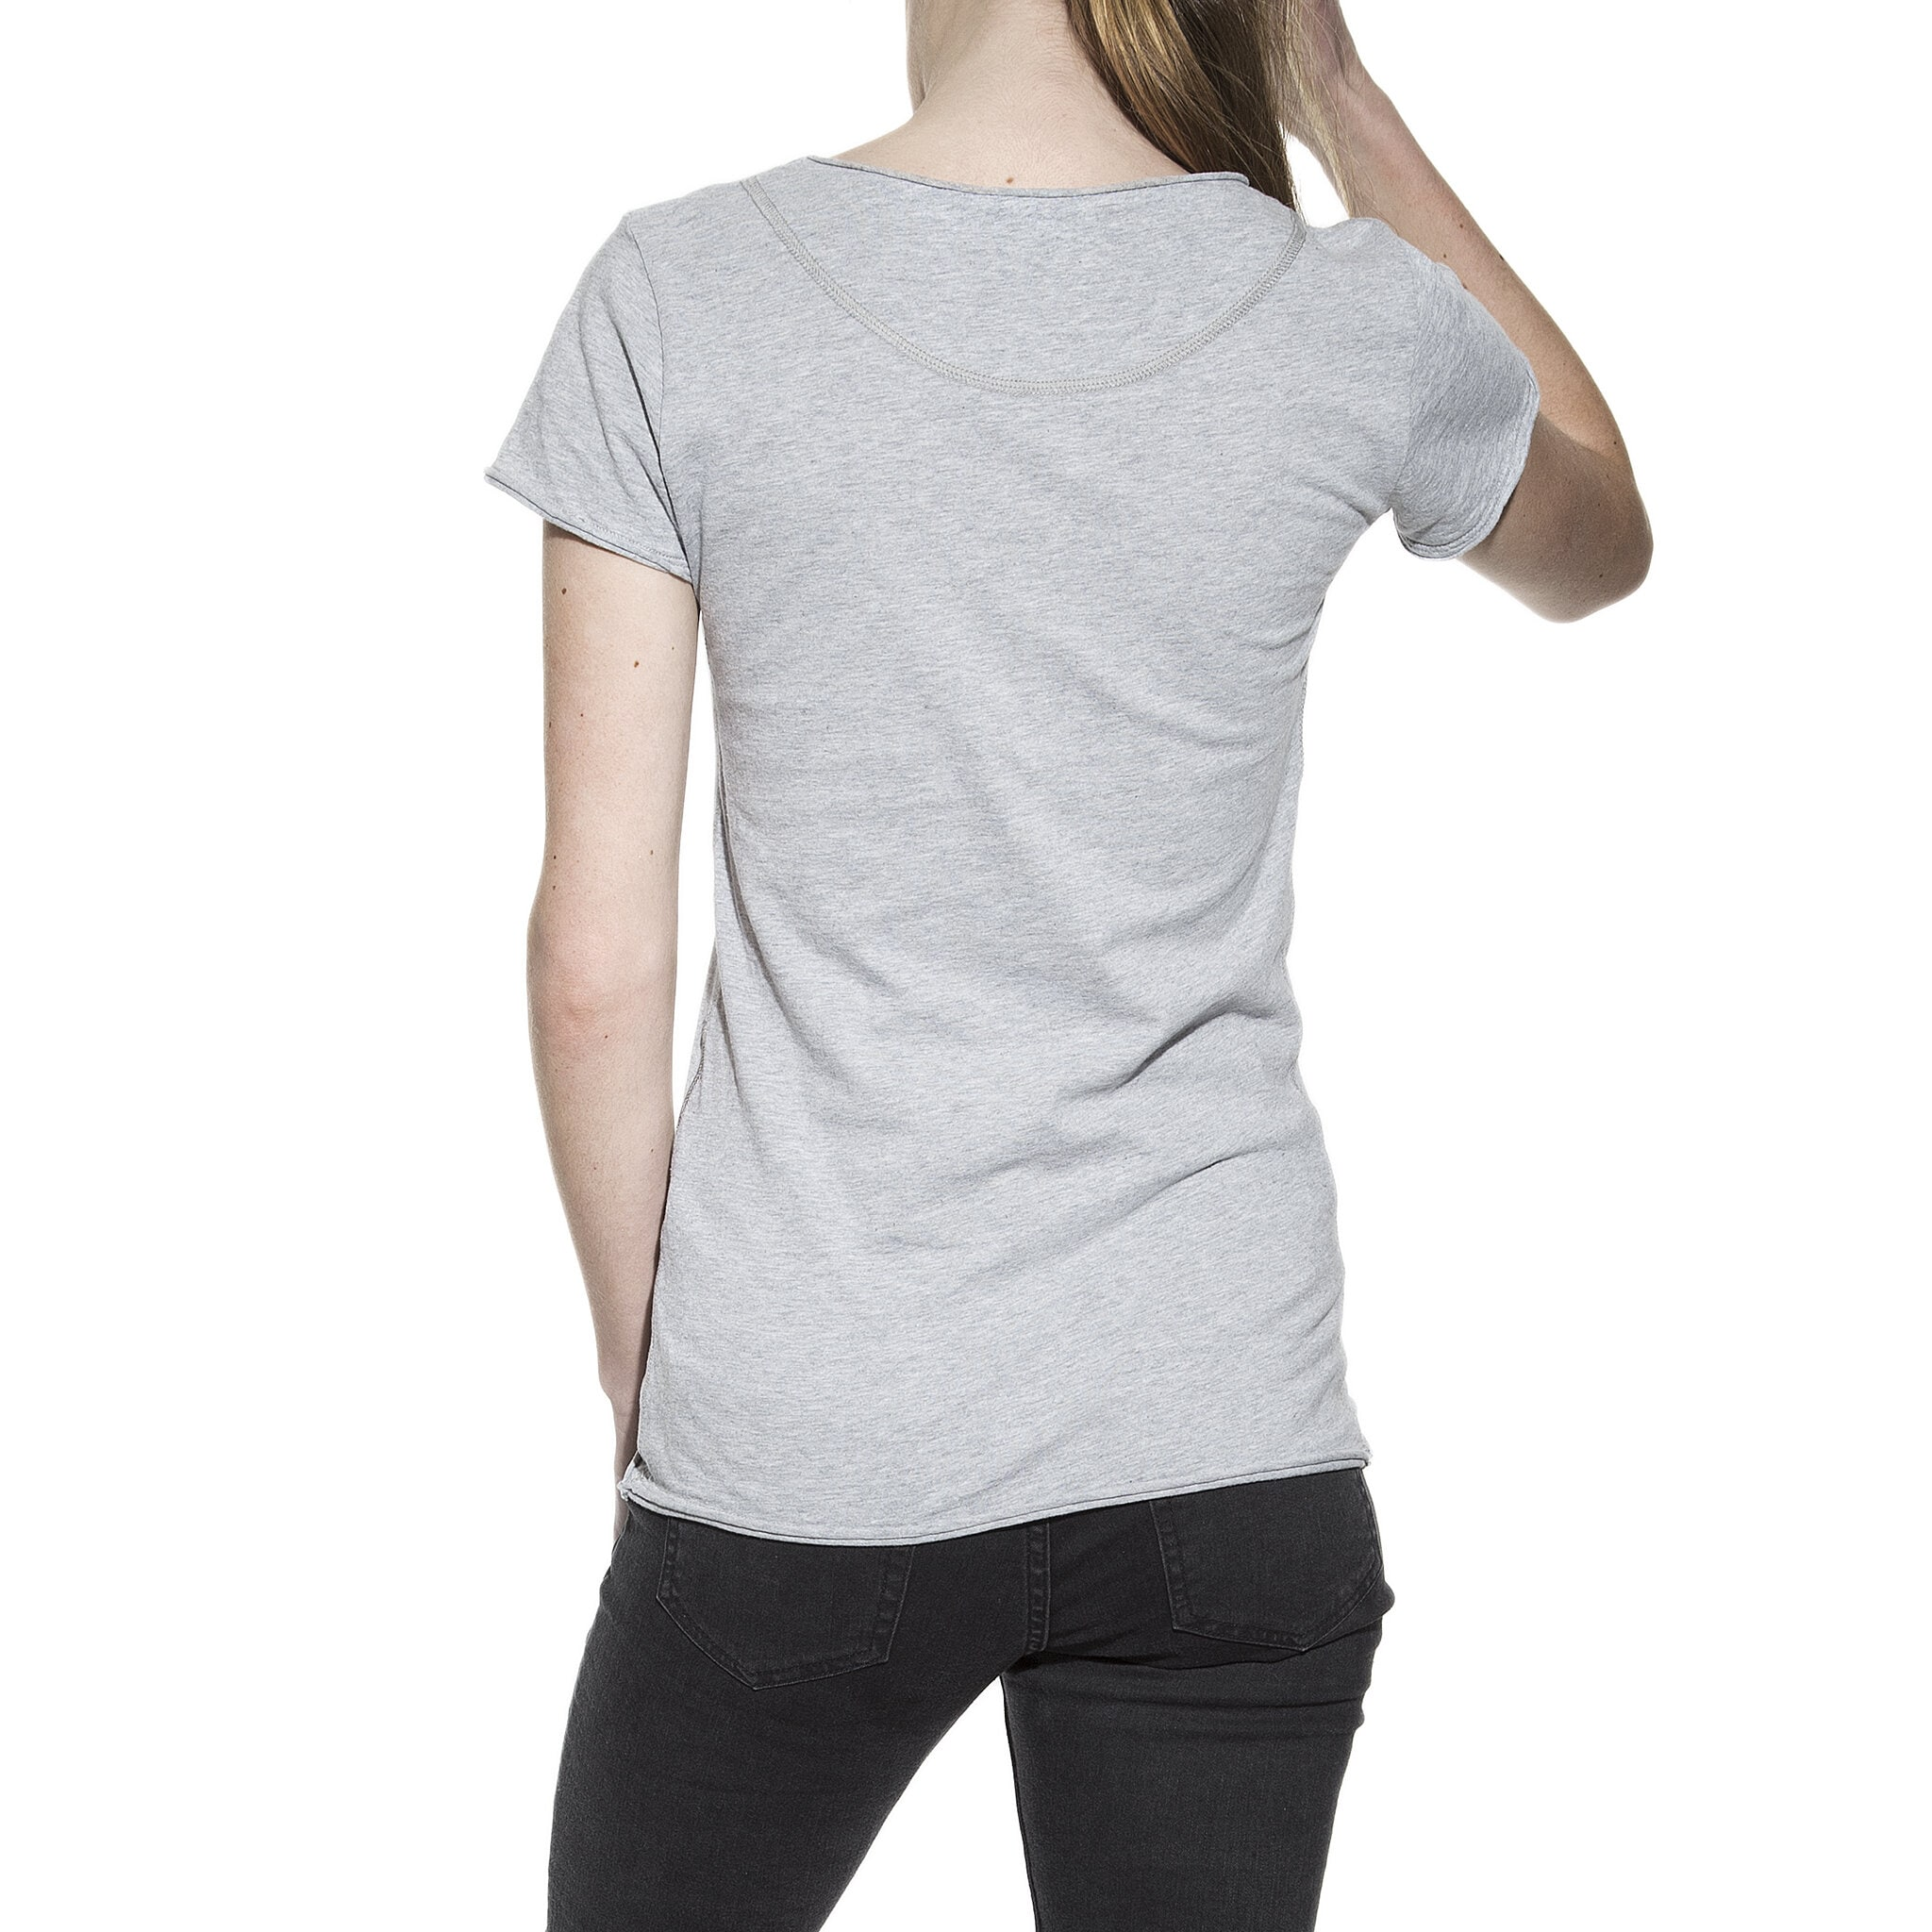 603103_Woman_Crew-Neck_relaxed_grey-melange_3